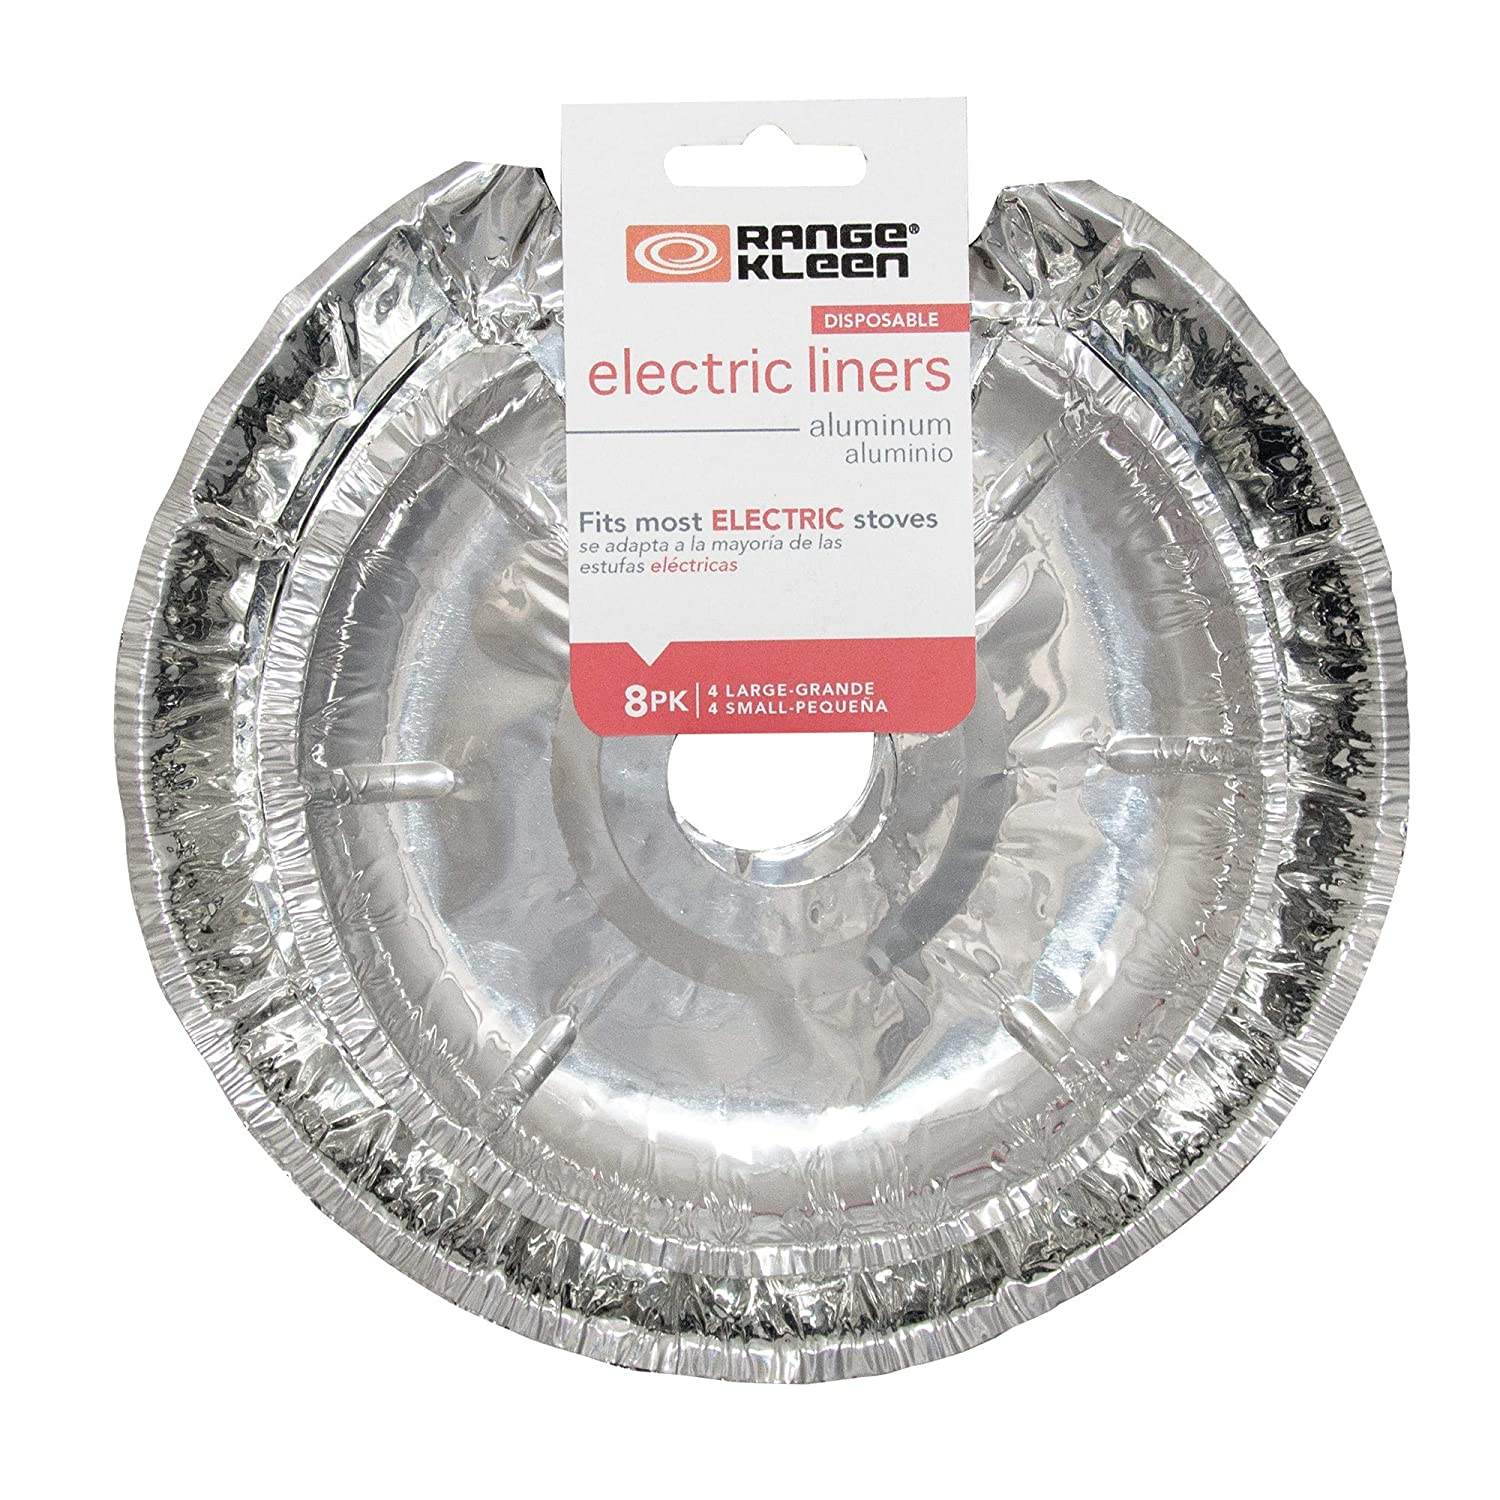 Amazon.com: Range Kleen Round Foil Burner Cover Liners - Pack of 8 (4 Small & 4 Large): Home Improvement